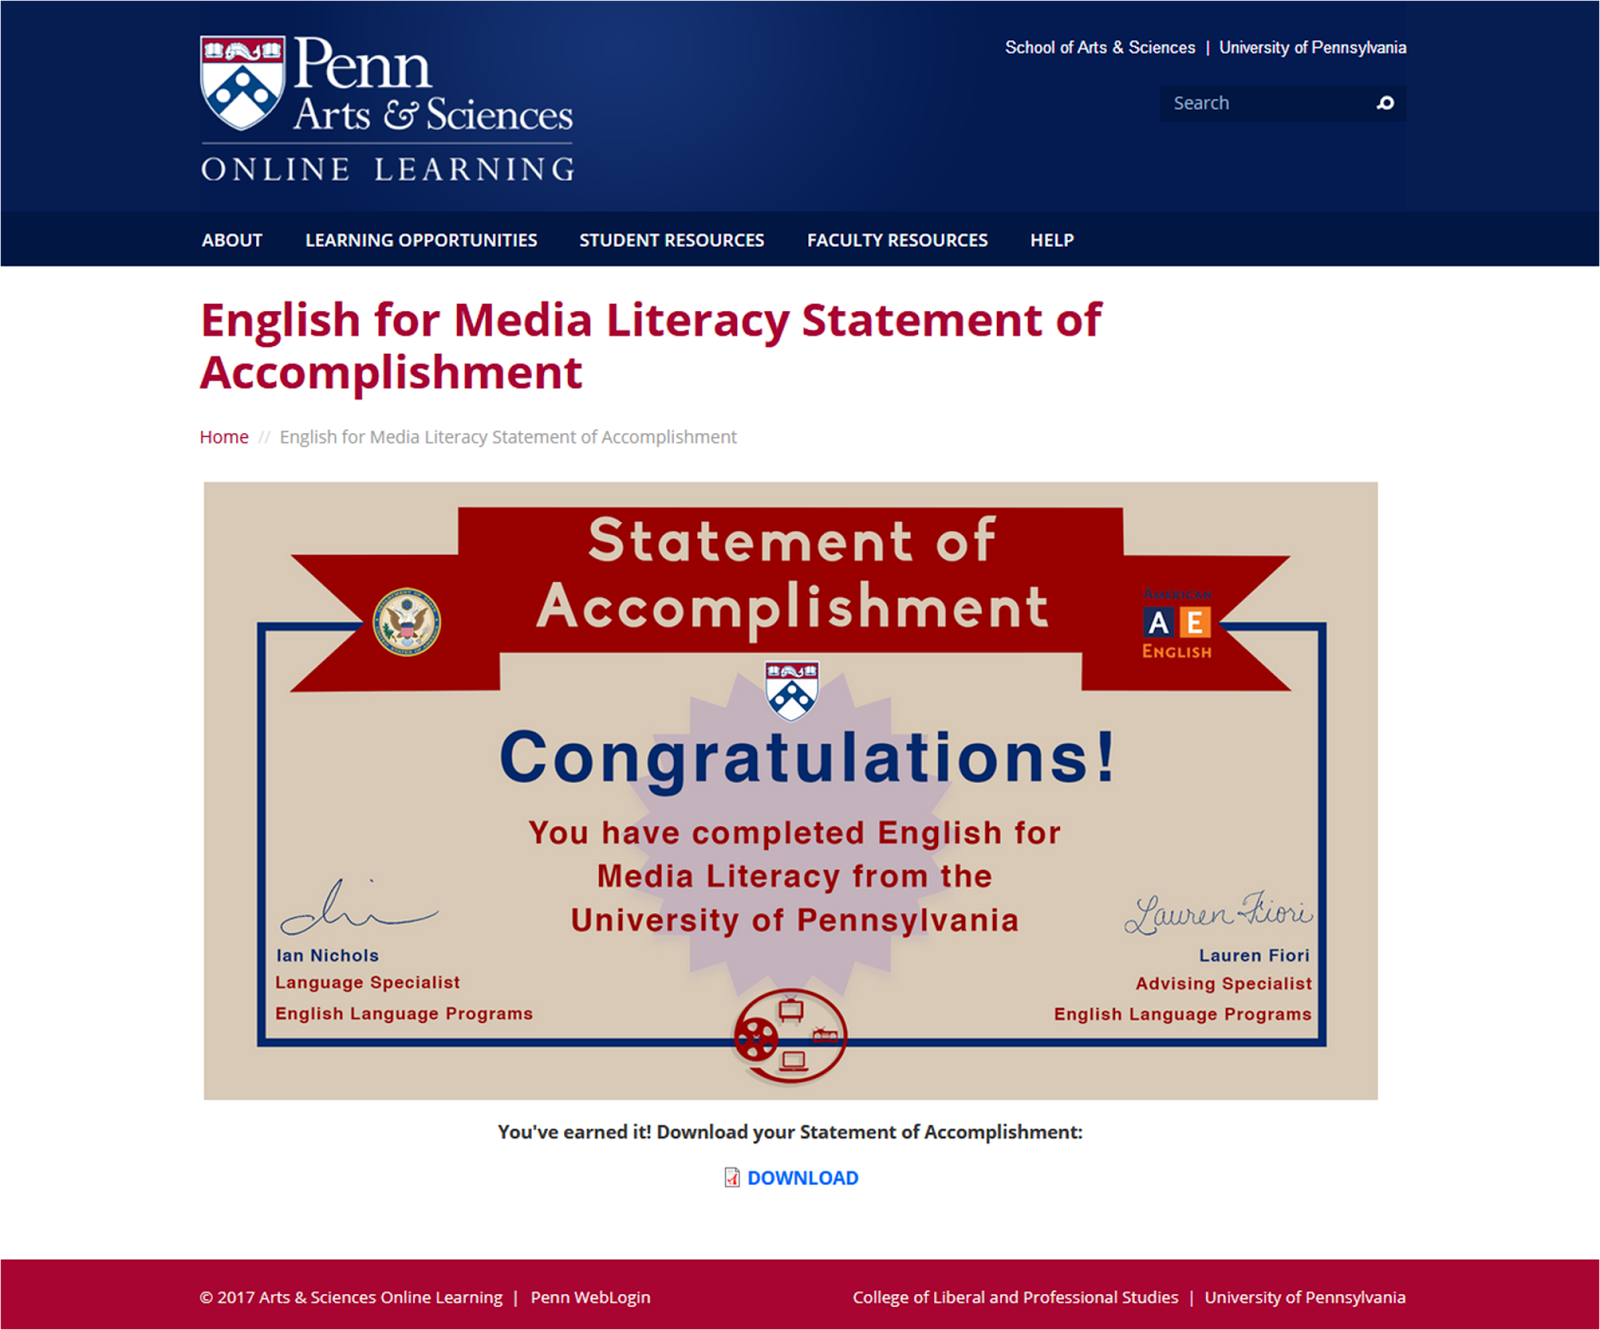 English for Media Literacy Statement of Accomplishment